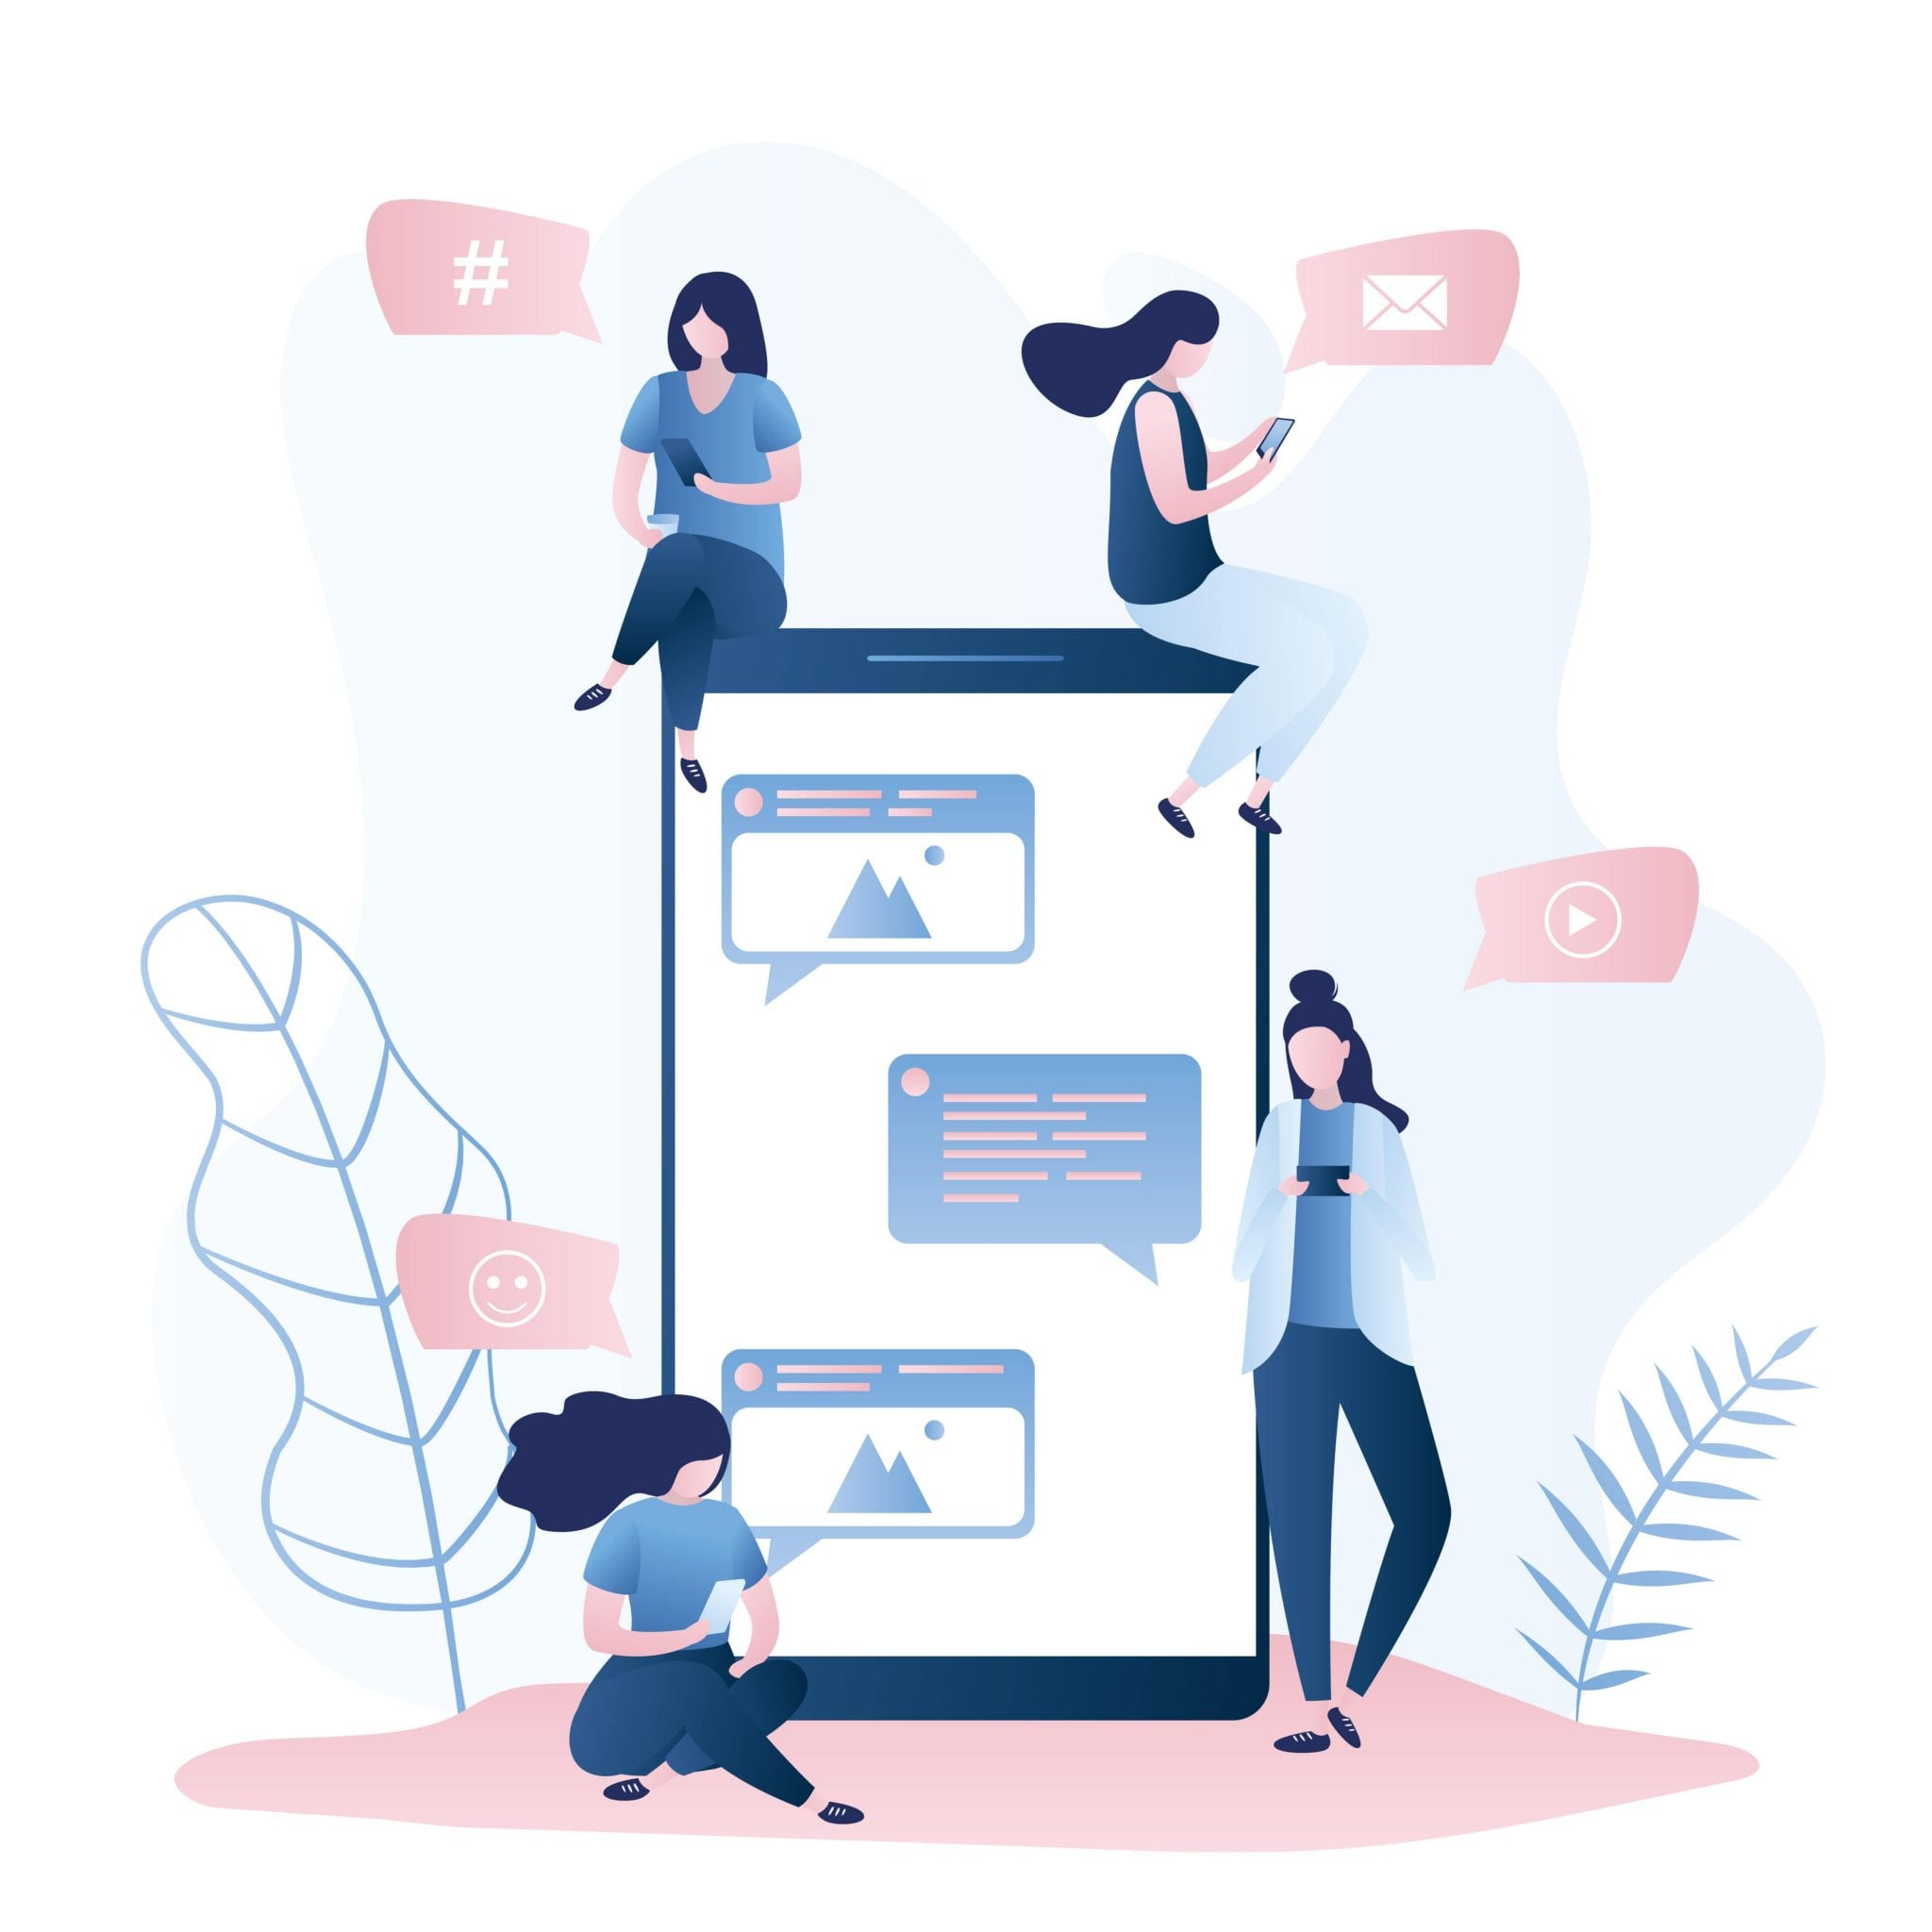 Big Mobile Phone and Female Characters With Gadgets for Communication, Speech Bubbles With Icons, Social Network Concept, Trendy Vector Illustration.